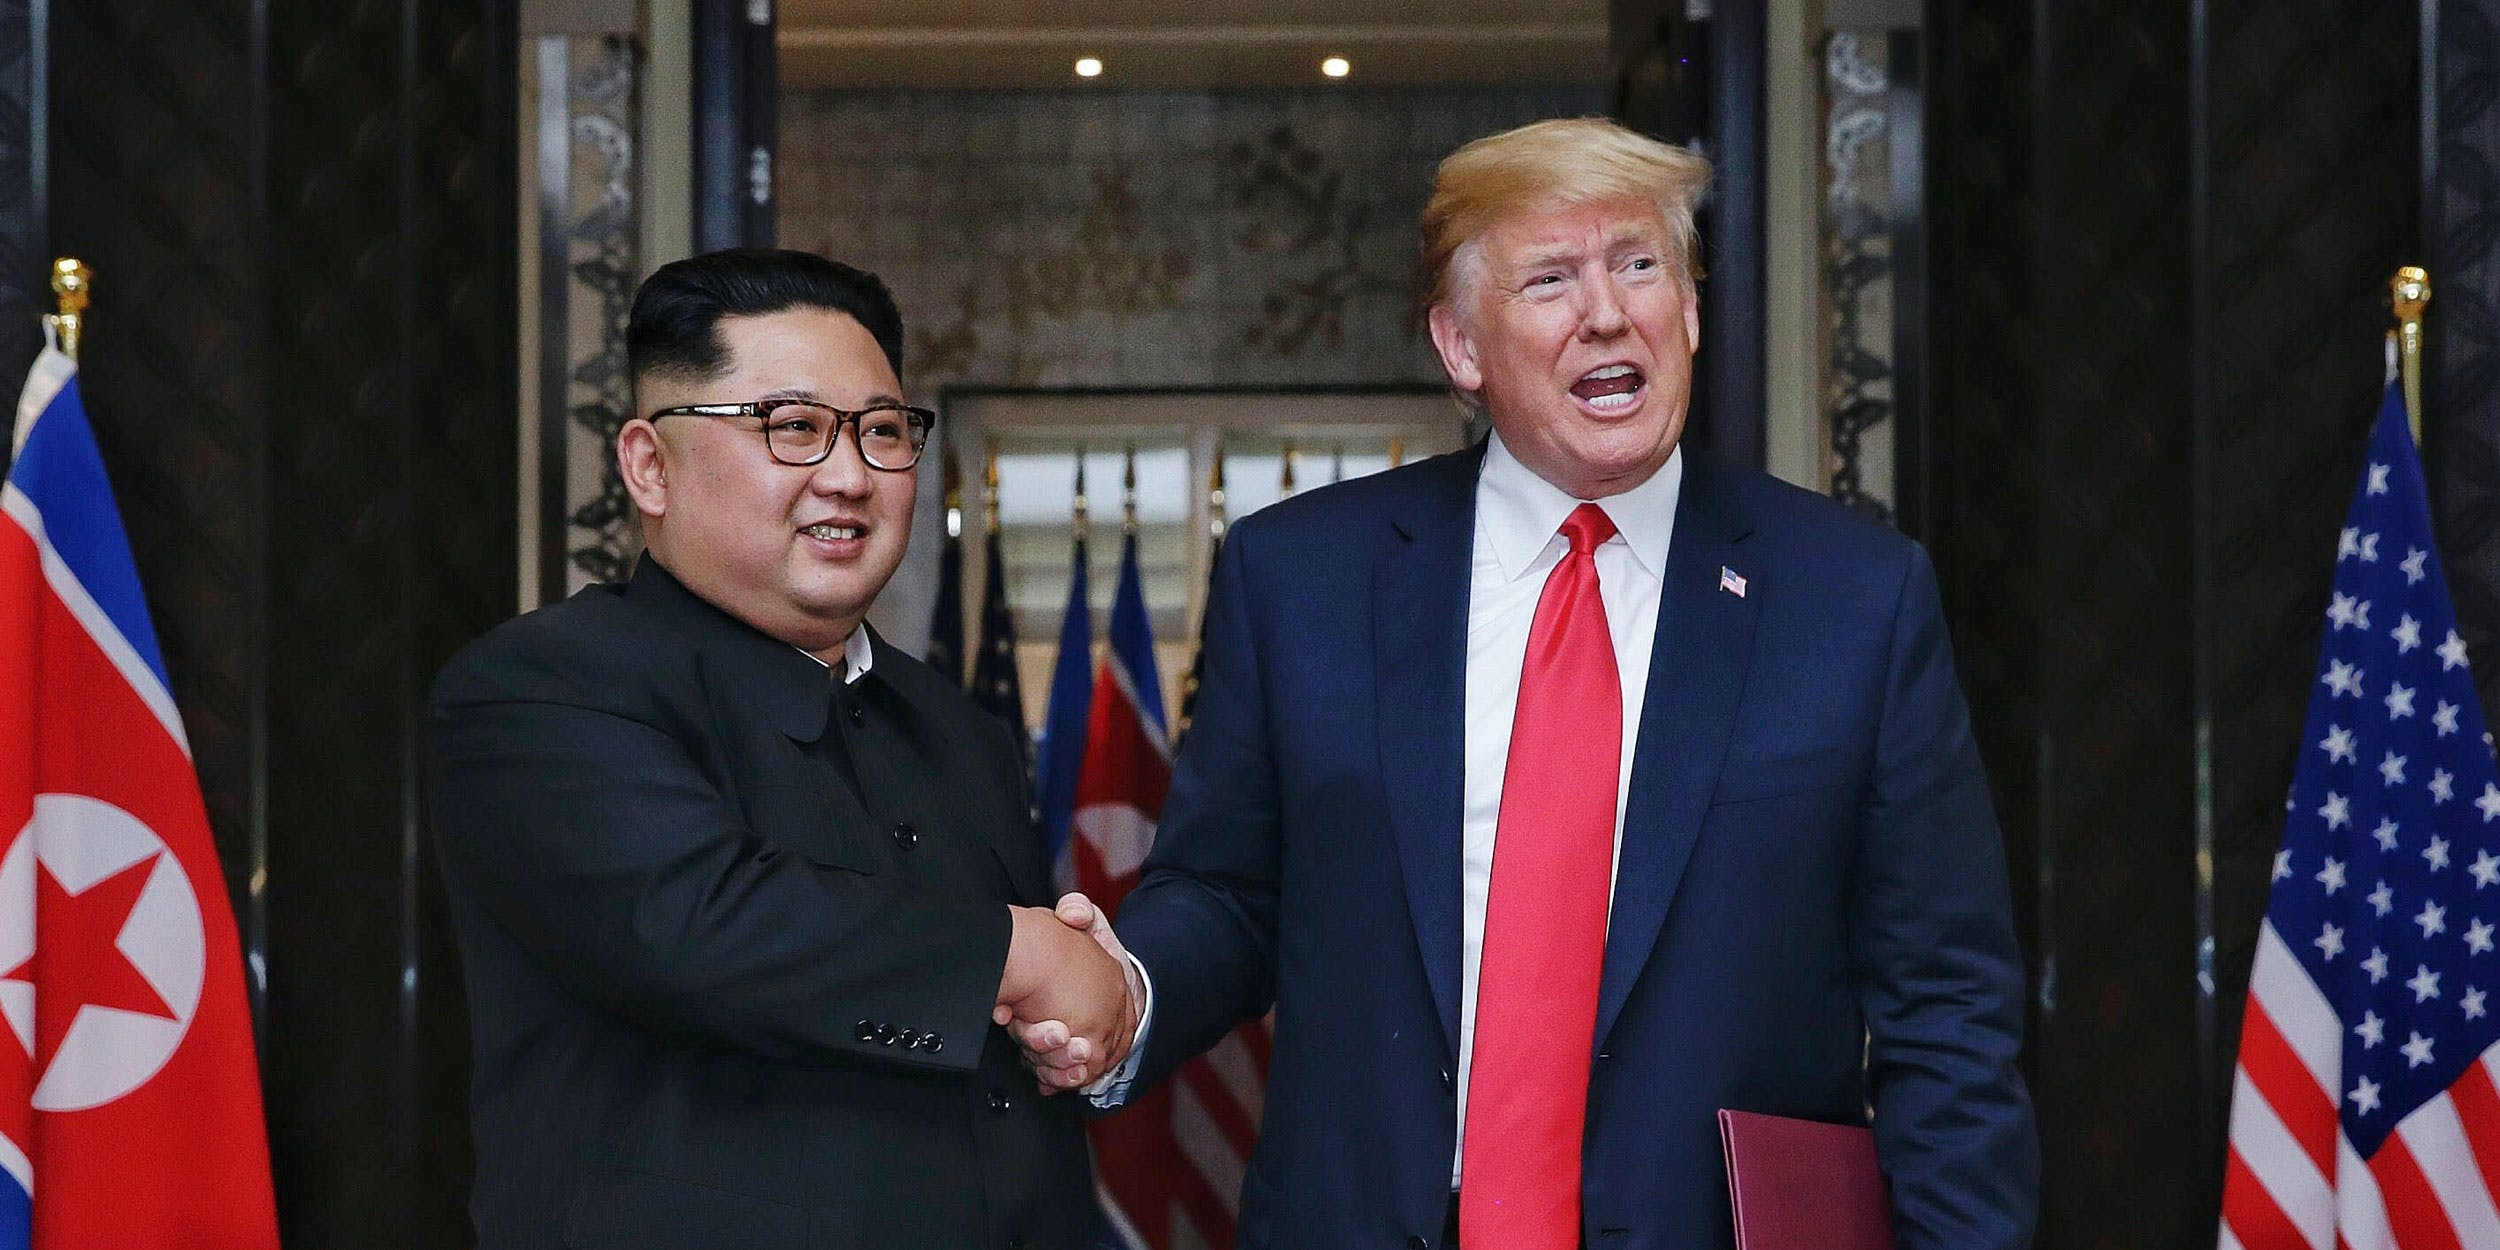 U.S. President Donald Trump (R) and North Korea's leader Kim Jong Un (L) shake their hands as they participate in a signing ceremony